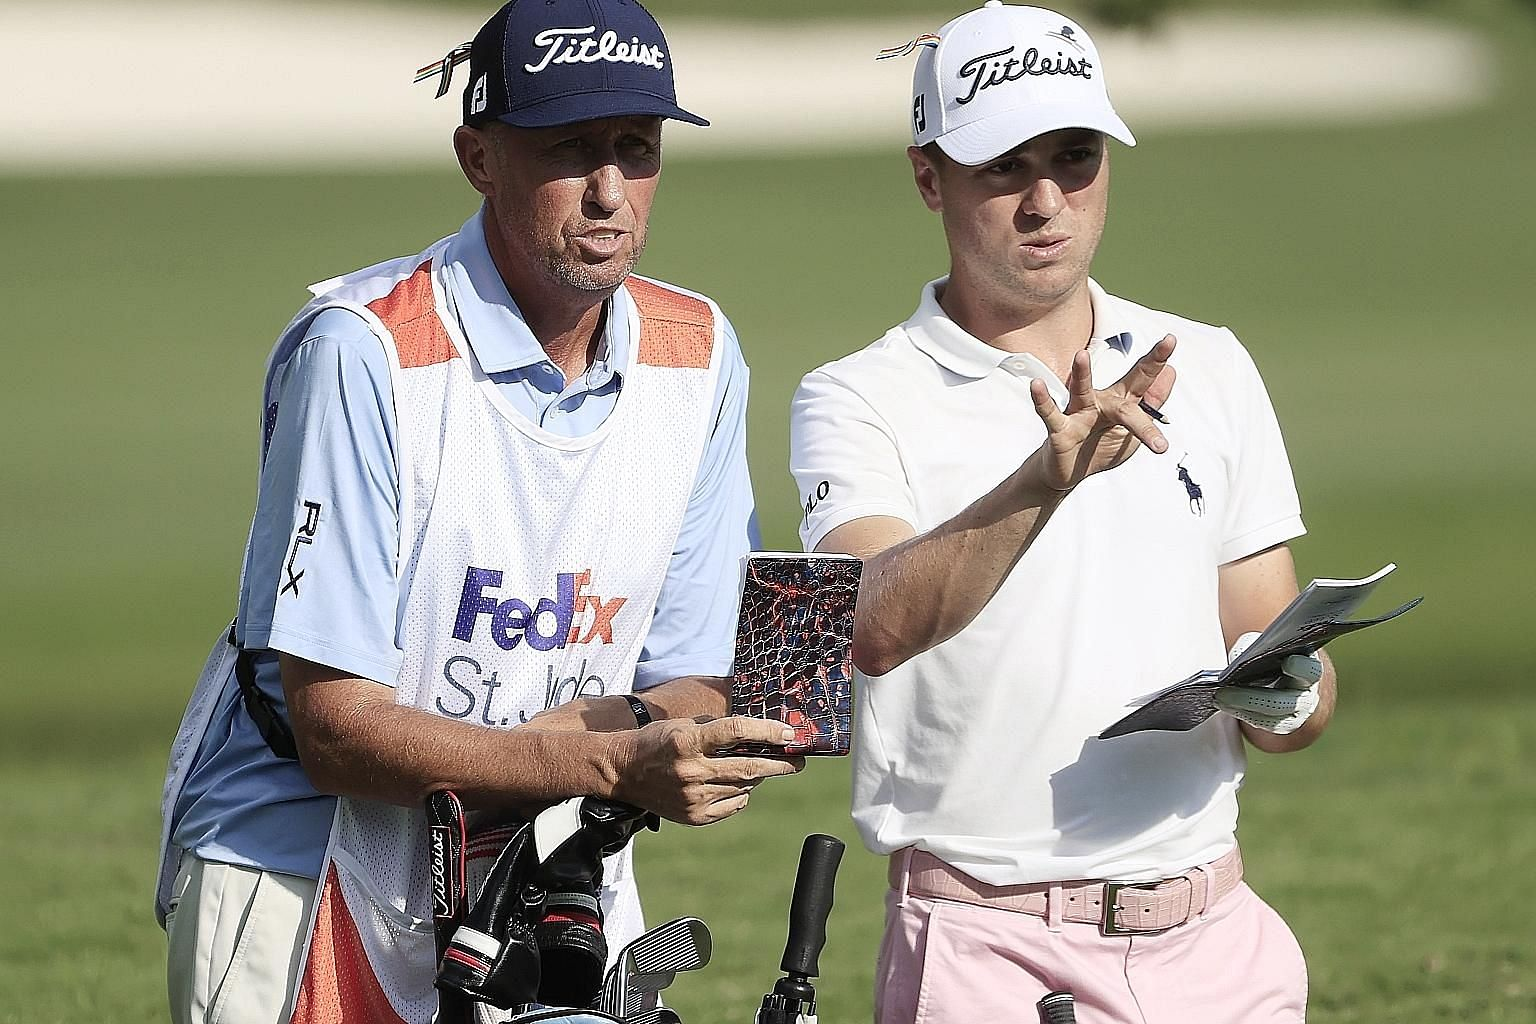 """Justin Thomas and caddie Jim """"Bones"""" Mackay discussing his second shot on the par-four final hole on Sunday. He saved par with a """"pretty sick"""" chip for a three-shot win in the WGC event in Memphis."""